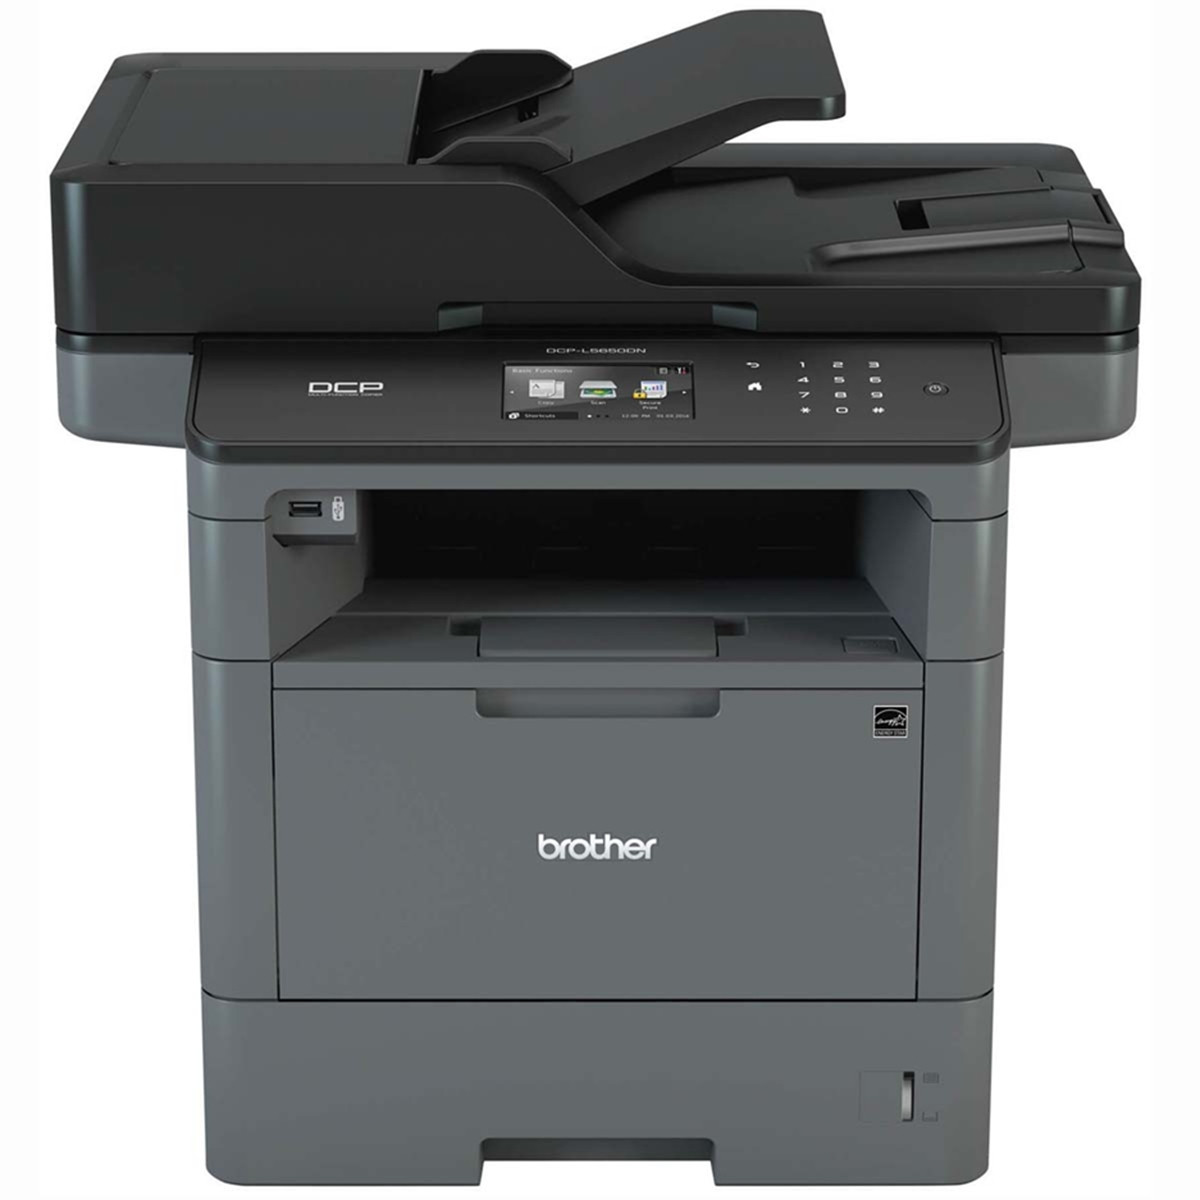 DRIVERS FOR BROTHER DCP-L5602DN